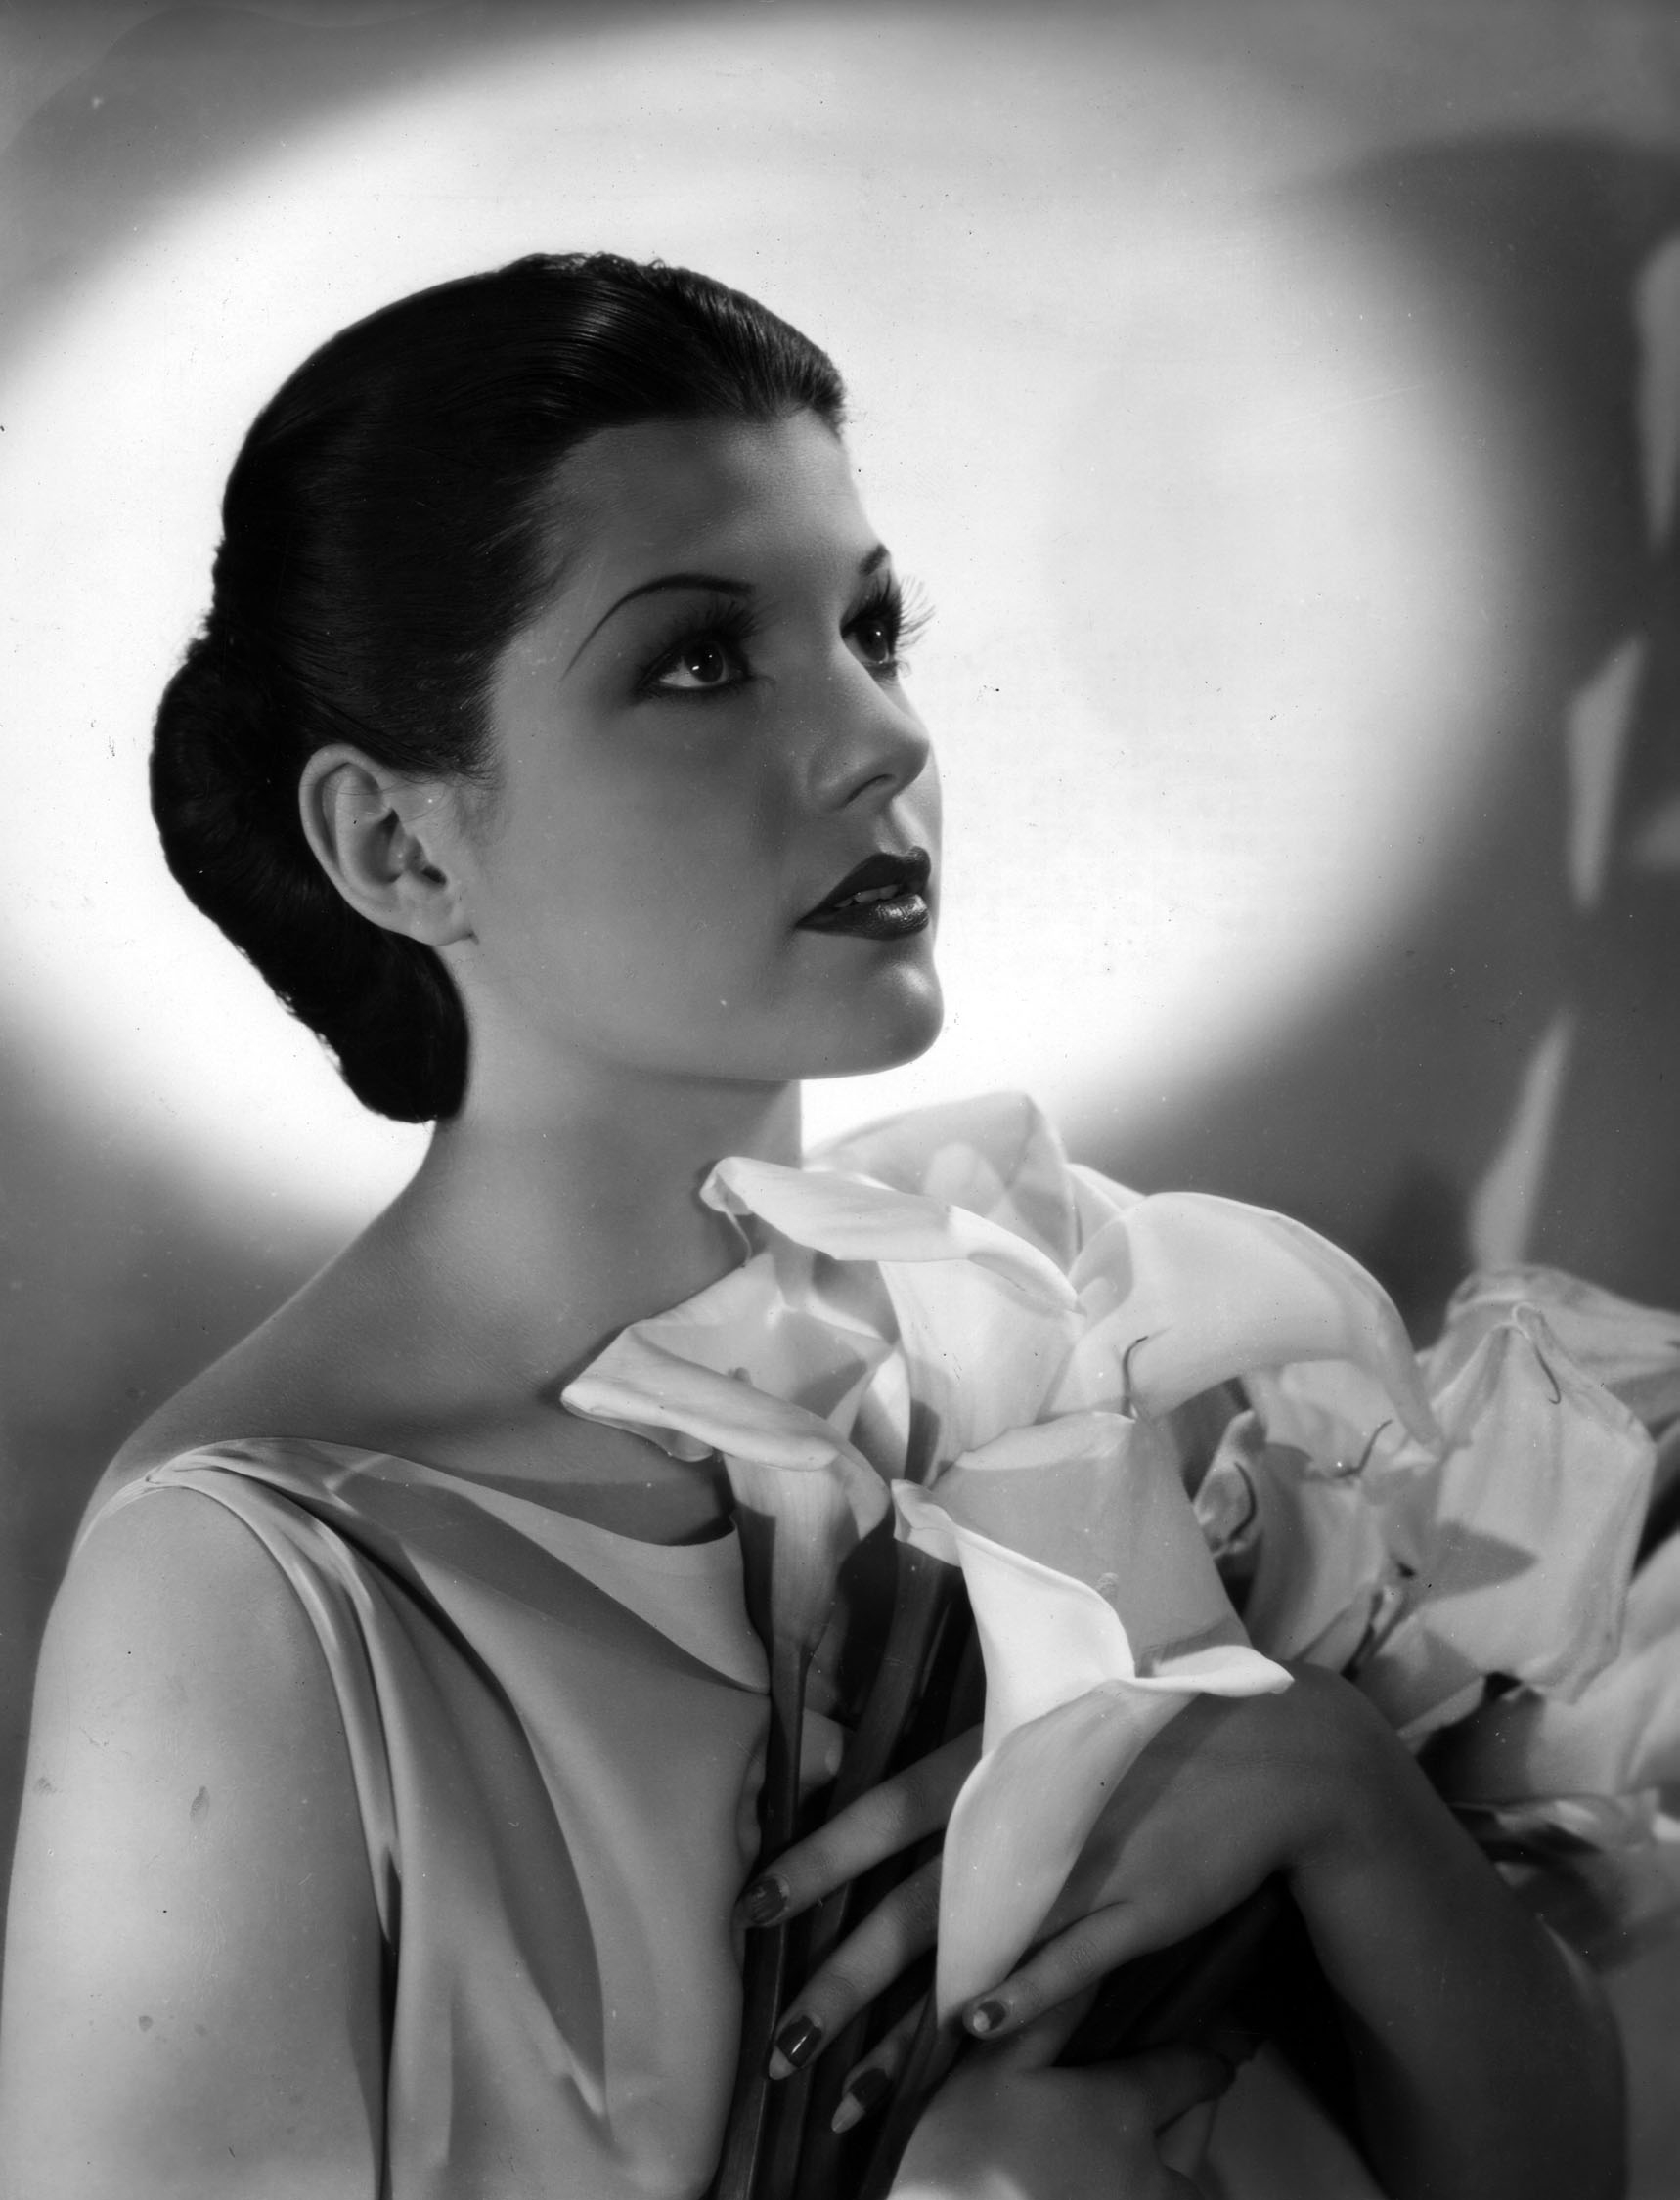 """Fox publicity still of Rita Cansino, circa 1936.  Original caption reads: """"EASTER MADONNA—Rita Cansino, beautiful Spanish-Irish actress, whose vivid dancing is a feature of 20th Century-Fox's 'Human Cargo', prepares  for the Easter Sunrise services which she attends regularly at the Hollywood Bowl."""""""